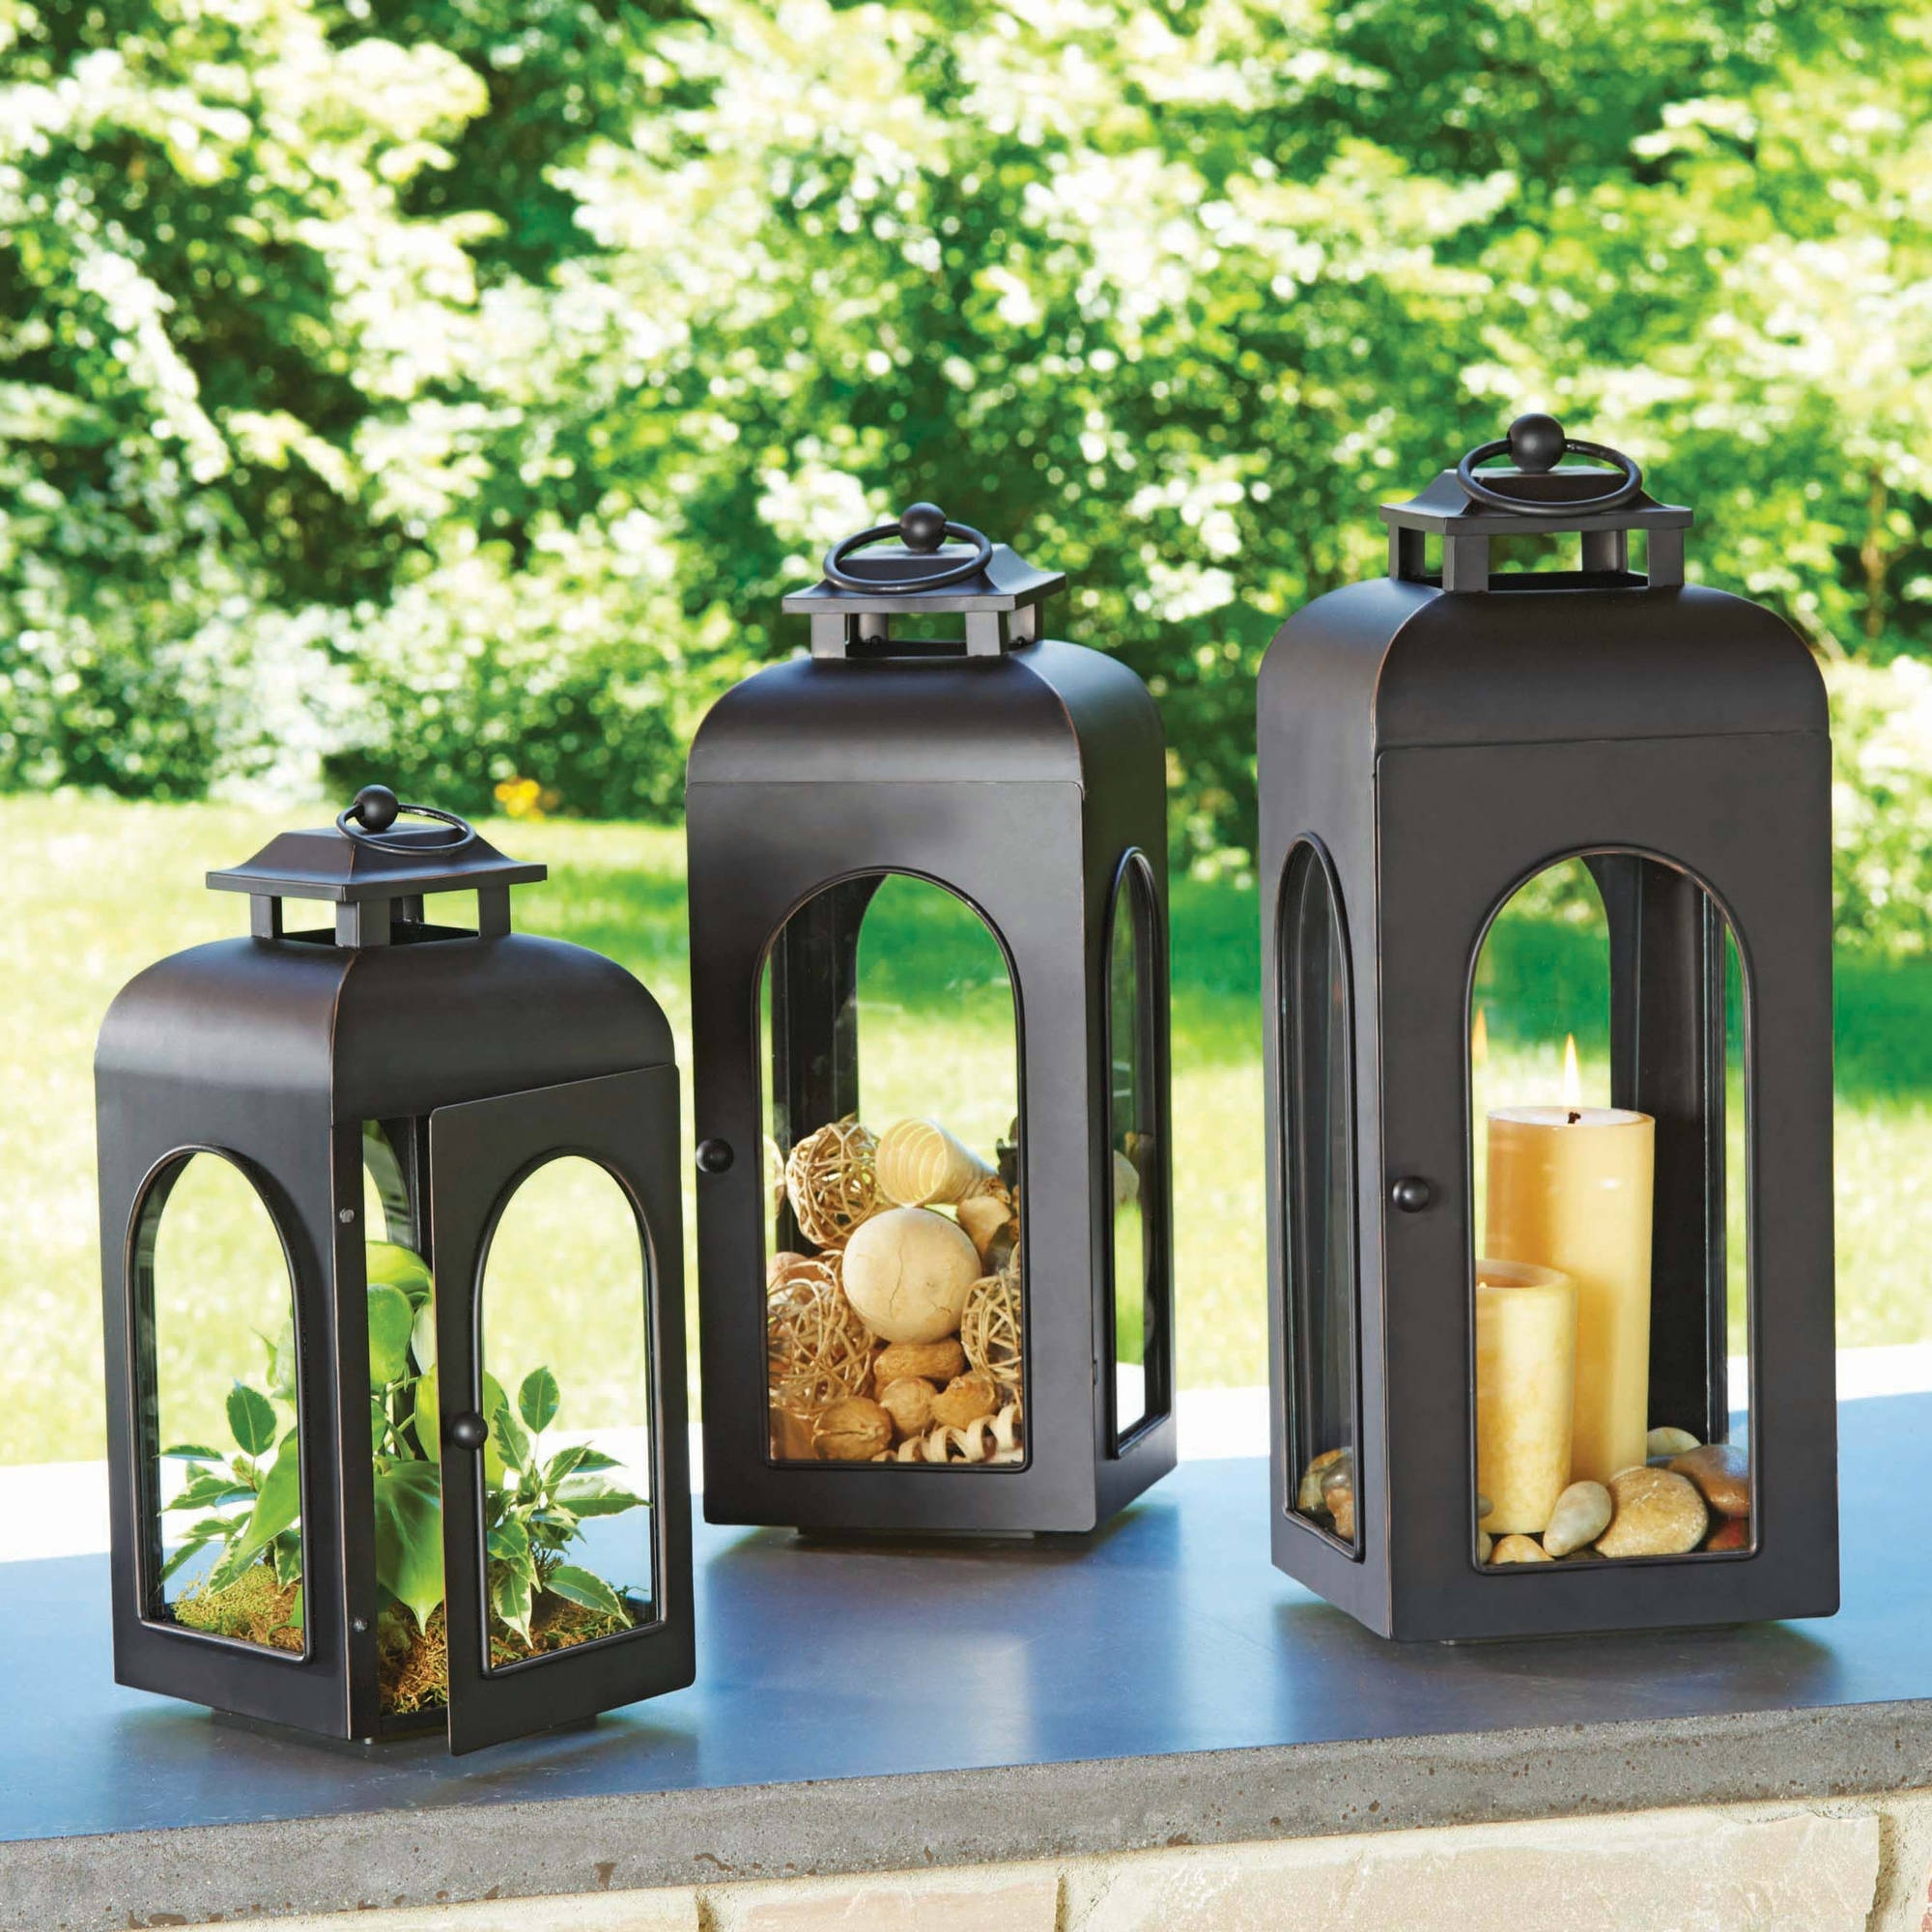 Widely Used Better Homes And Gardens Domed Metal Outdoor Lantern – Walmart Intended For Walmart Outdoor Lanterns (View 4 of 20)